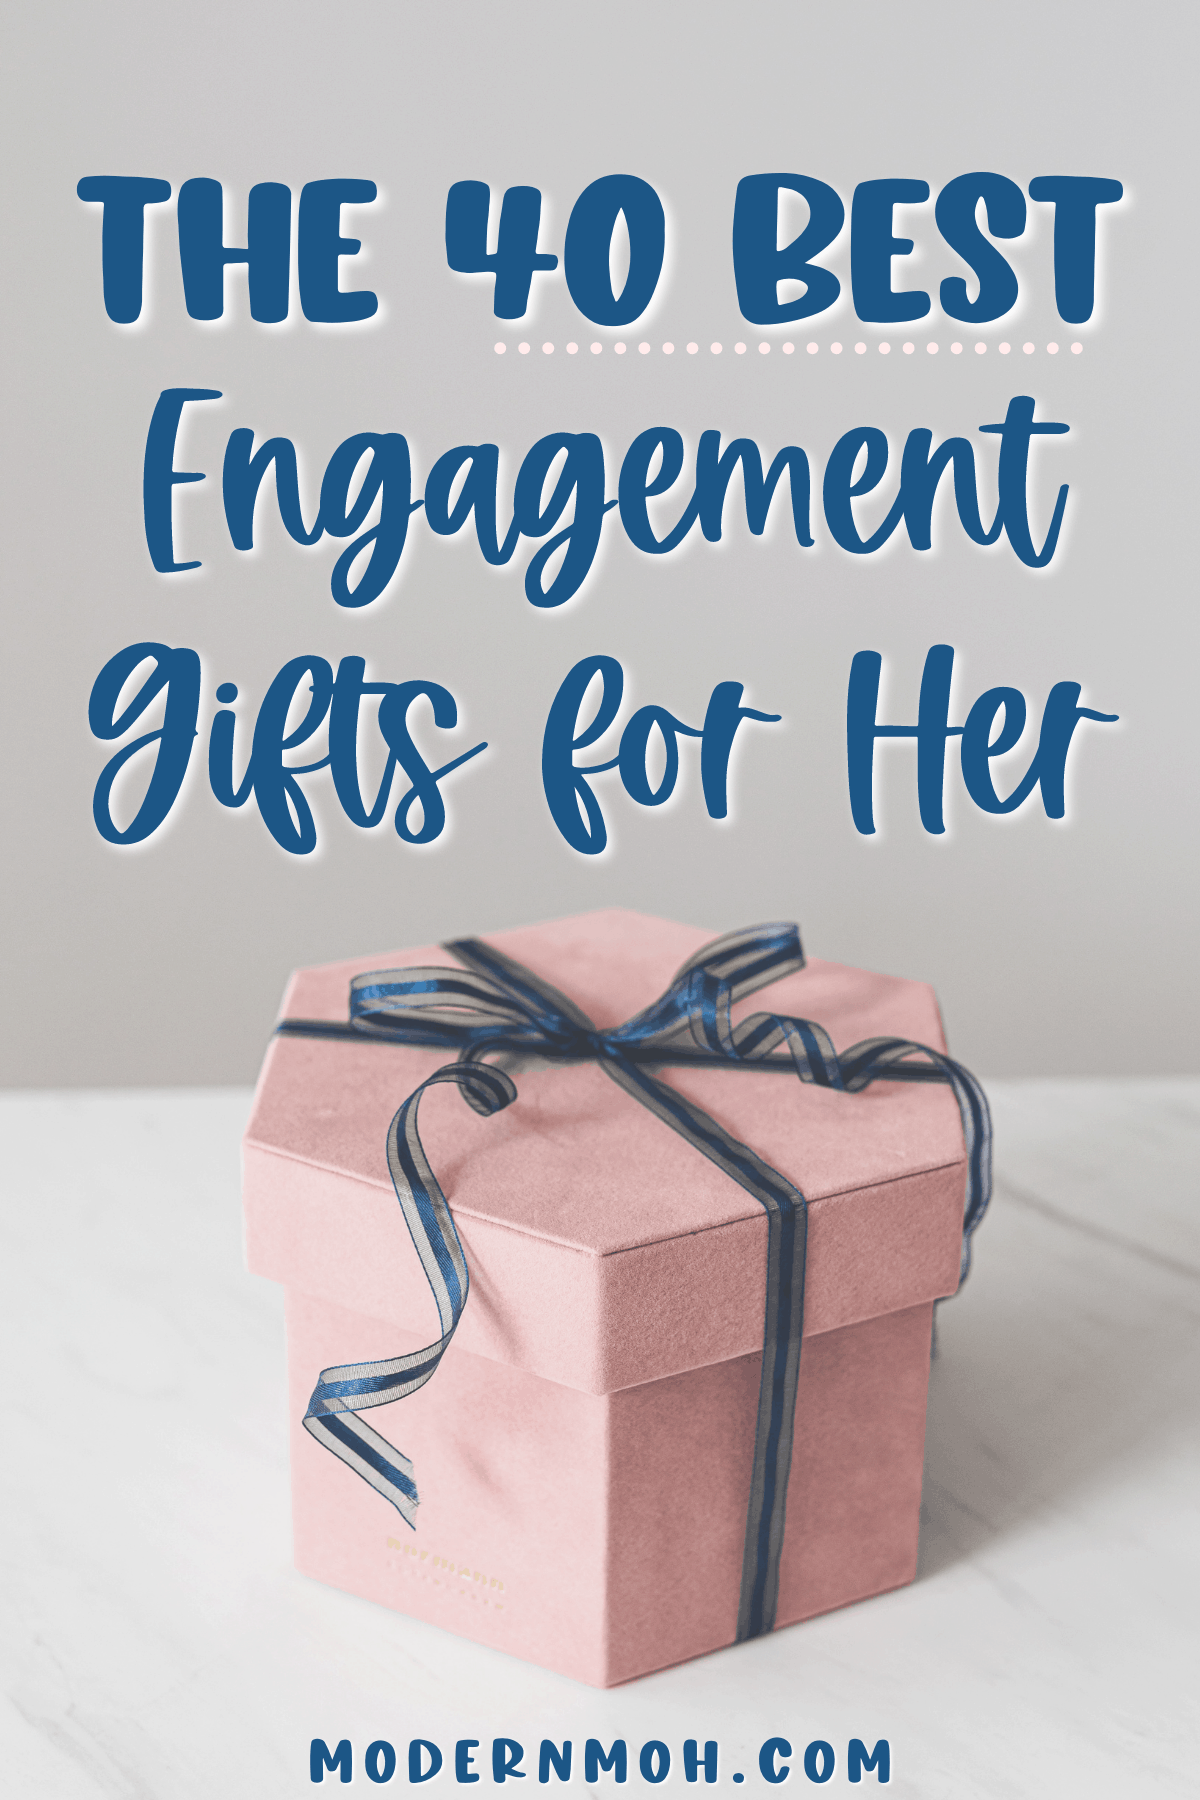 The 40 Best Engagement Gifts for Every Bride-to-Be